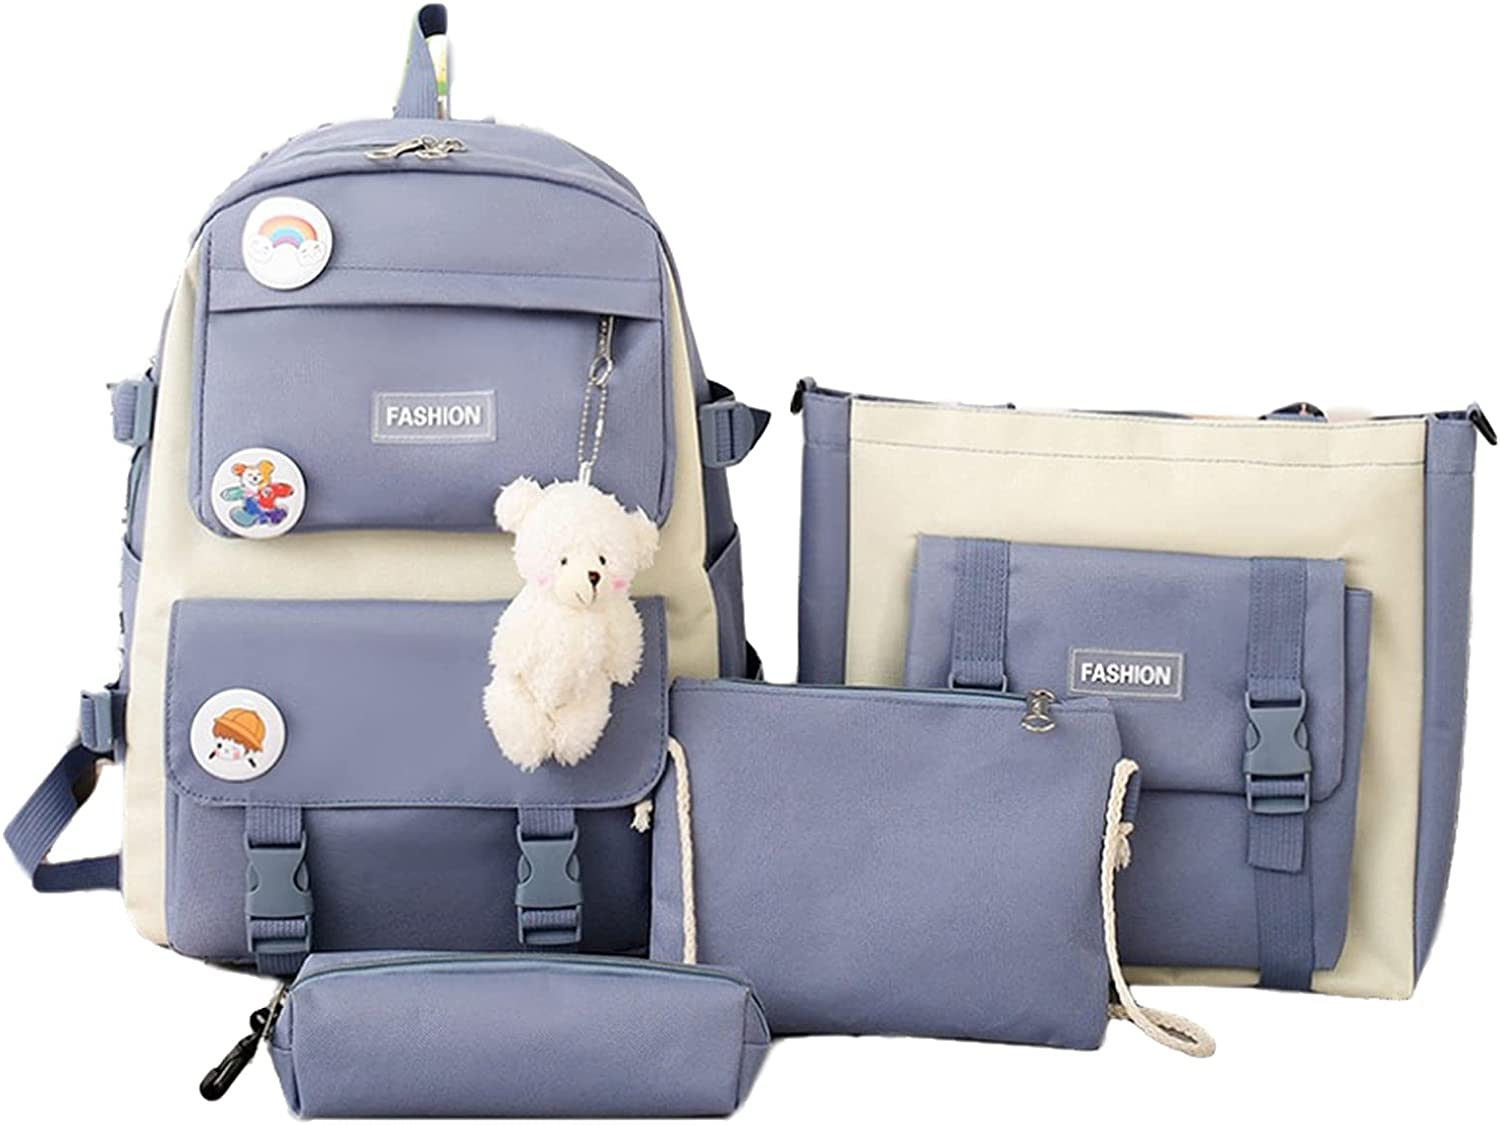 4Pcs Backpacks Combo Set with Bear Pendant for Teenage Students - Canvas Laptop School Bag Sets for Kids with Tote Pencil Case, Lunch Box Bag, Back To School Supplies Daypack Kit (Blue)